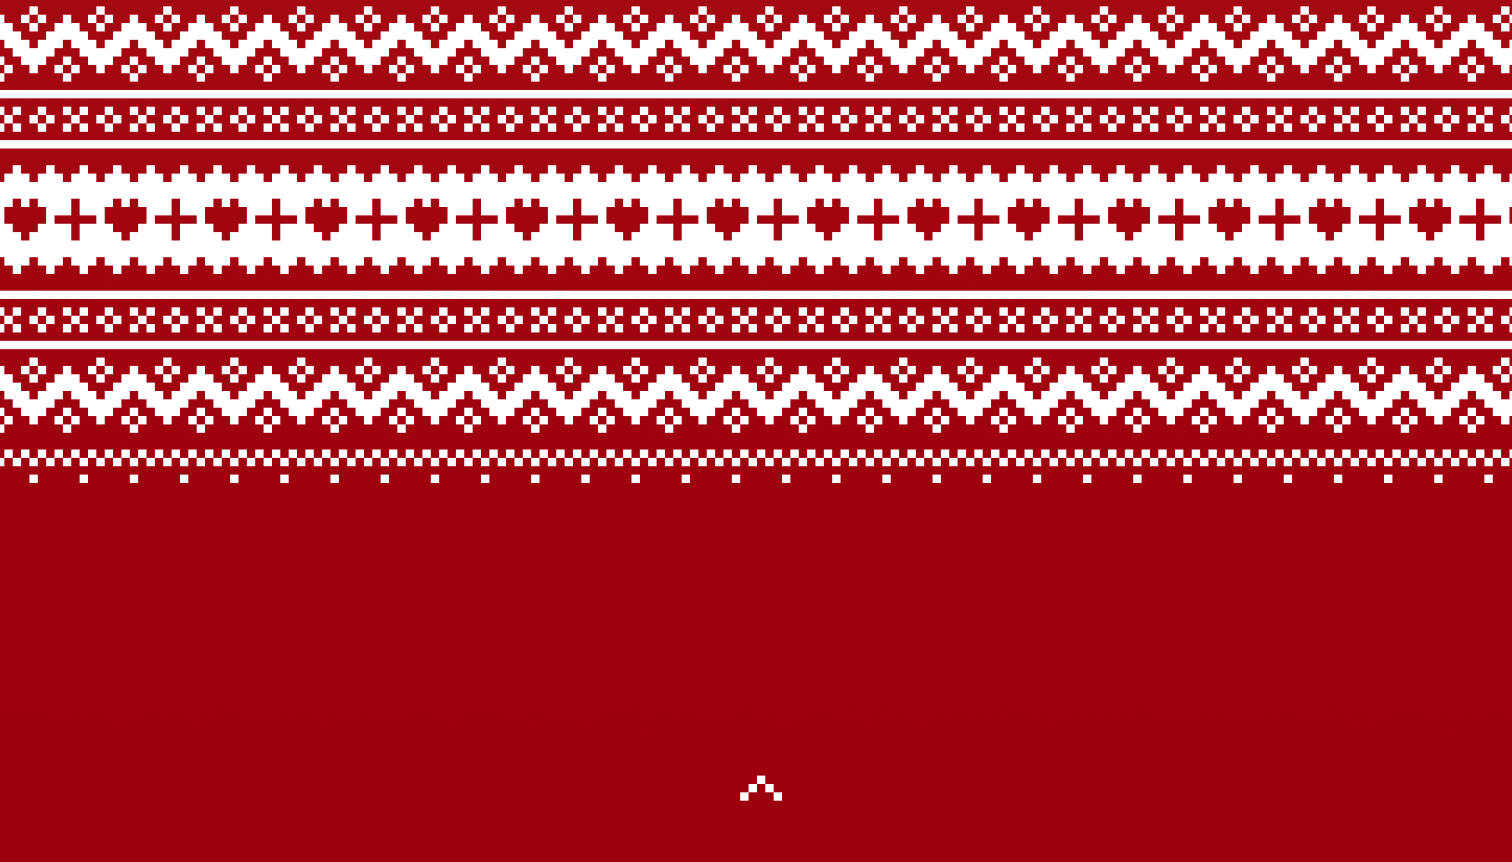 Christmas Jumper Space Invaders Games